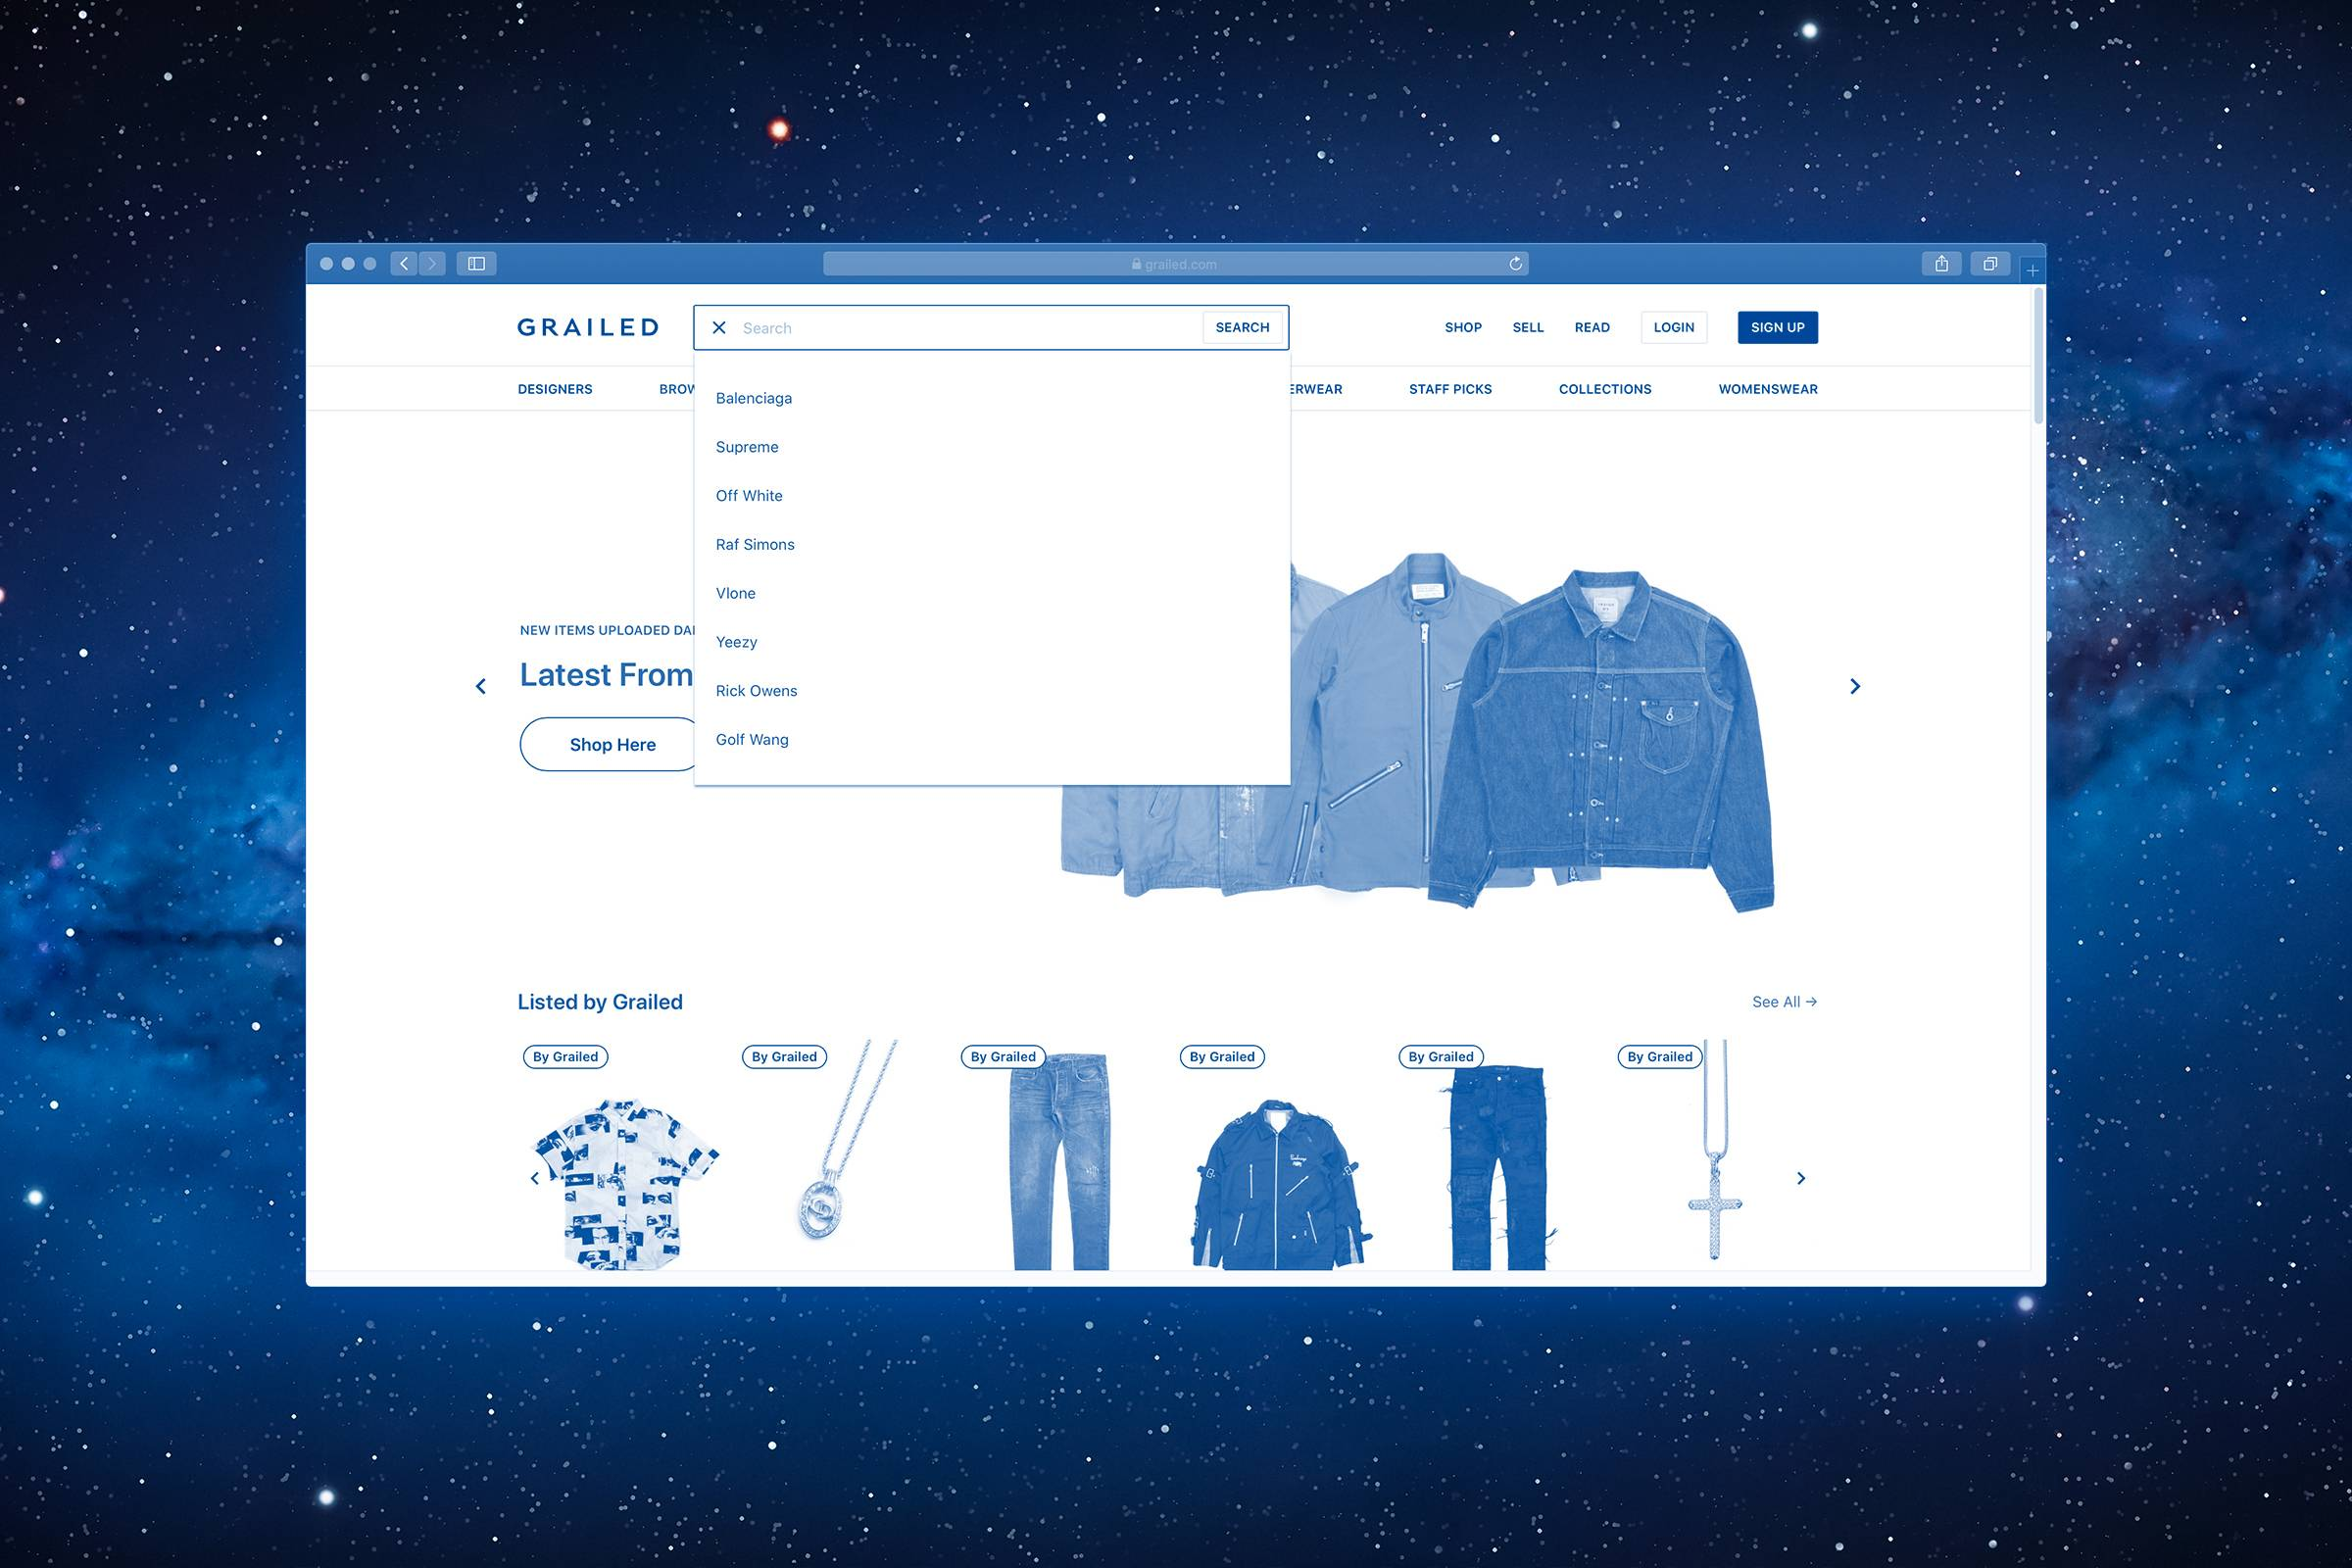 Searching on Grailed